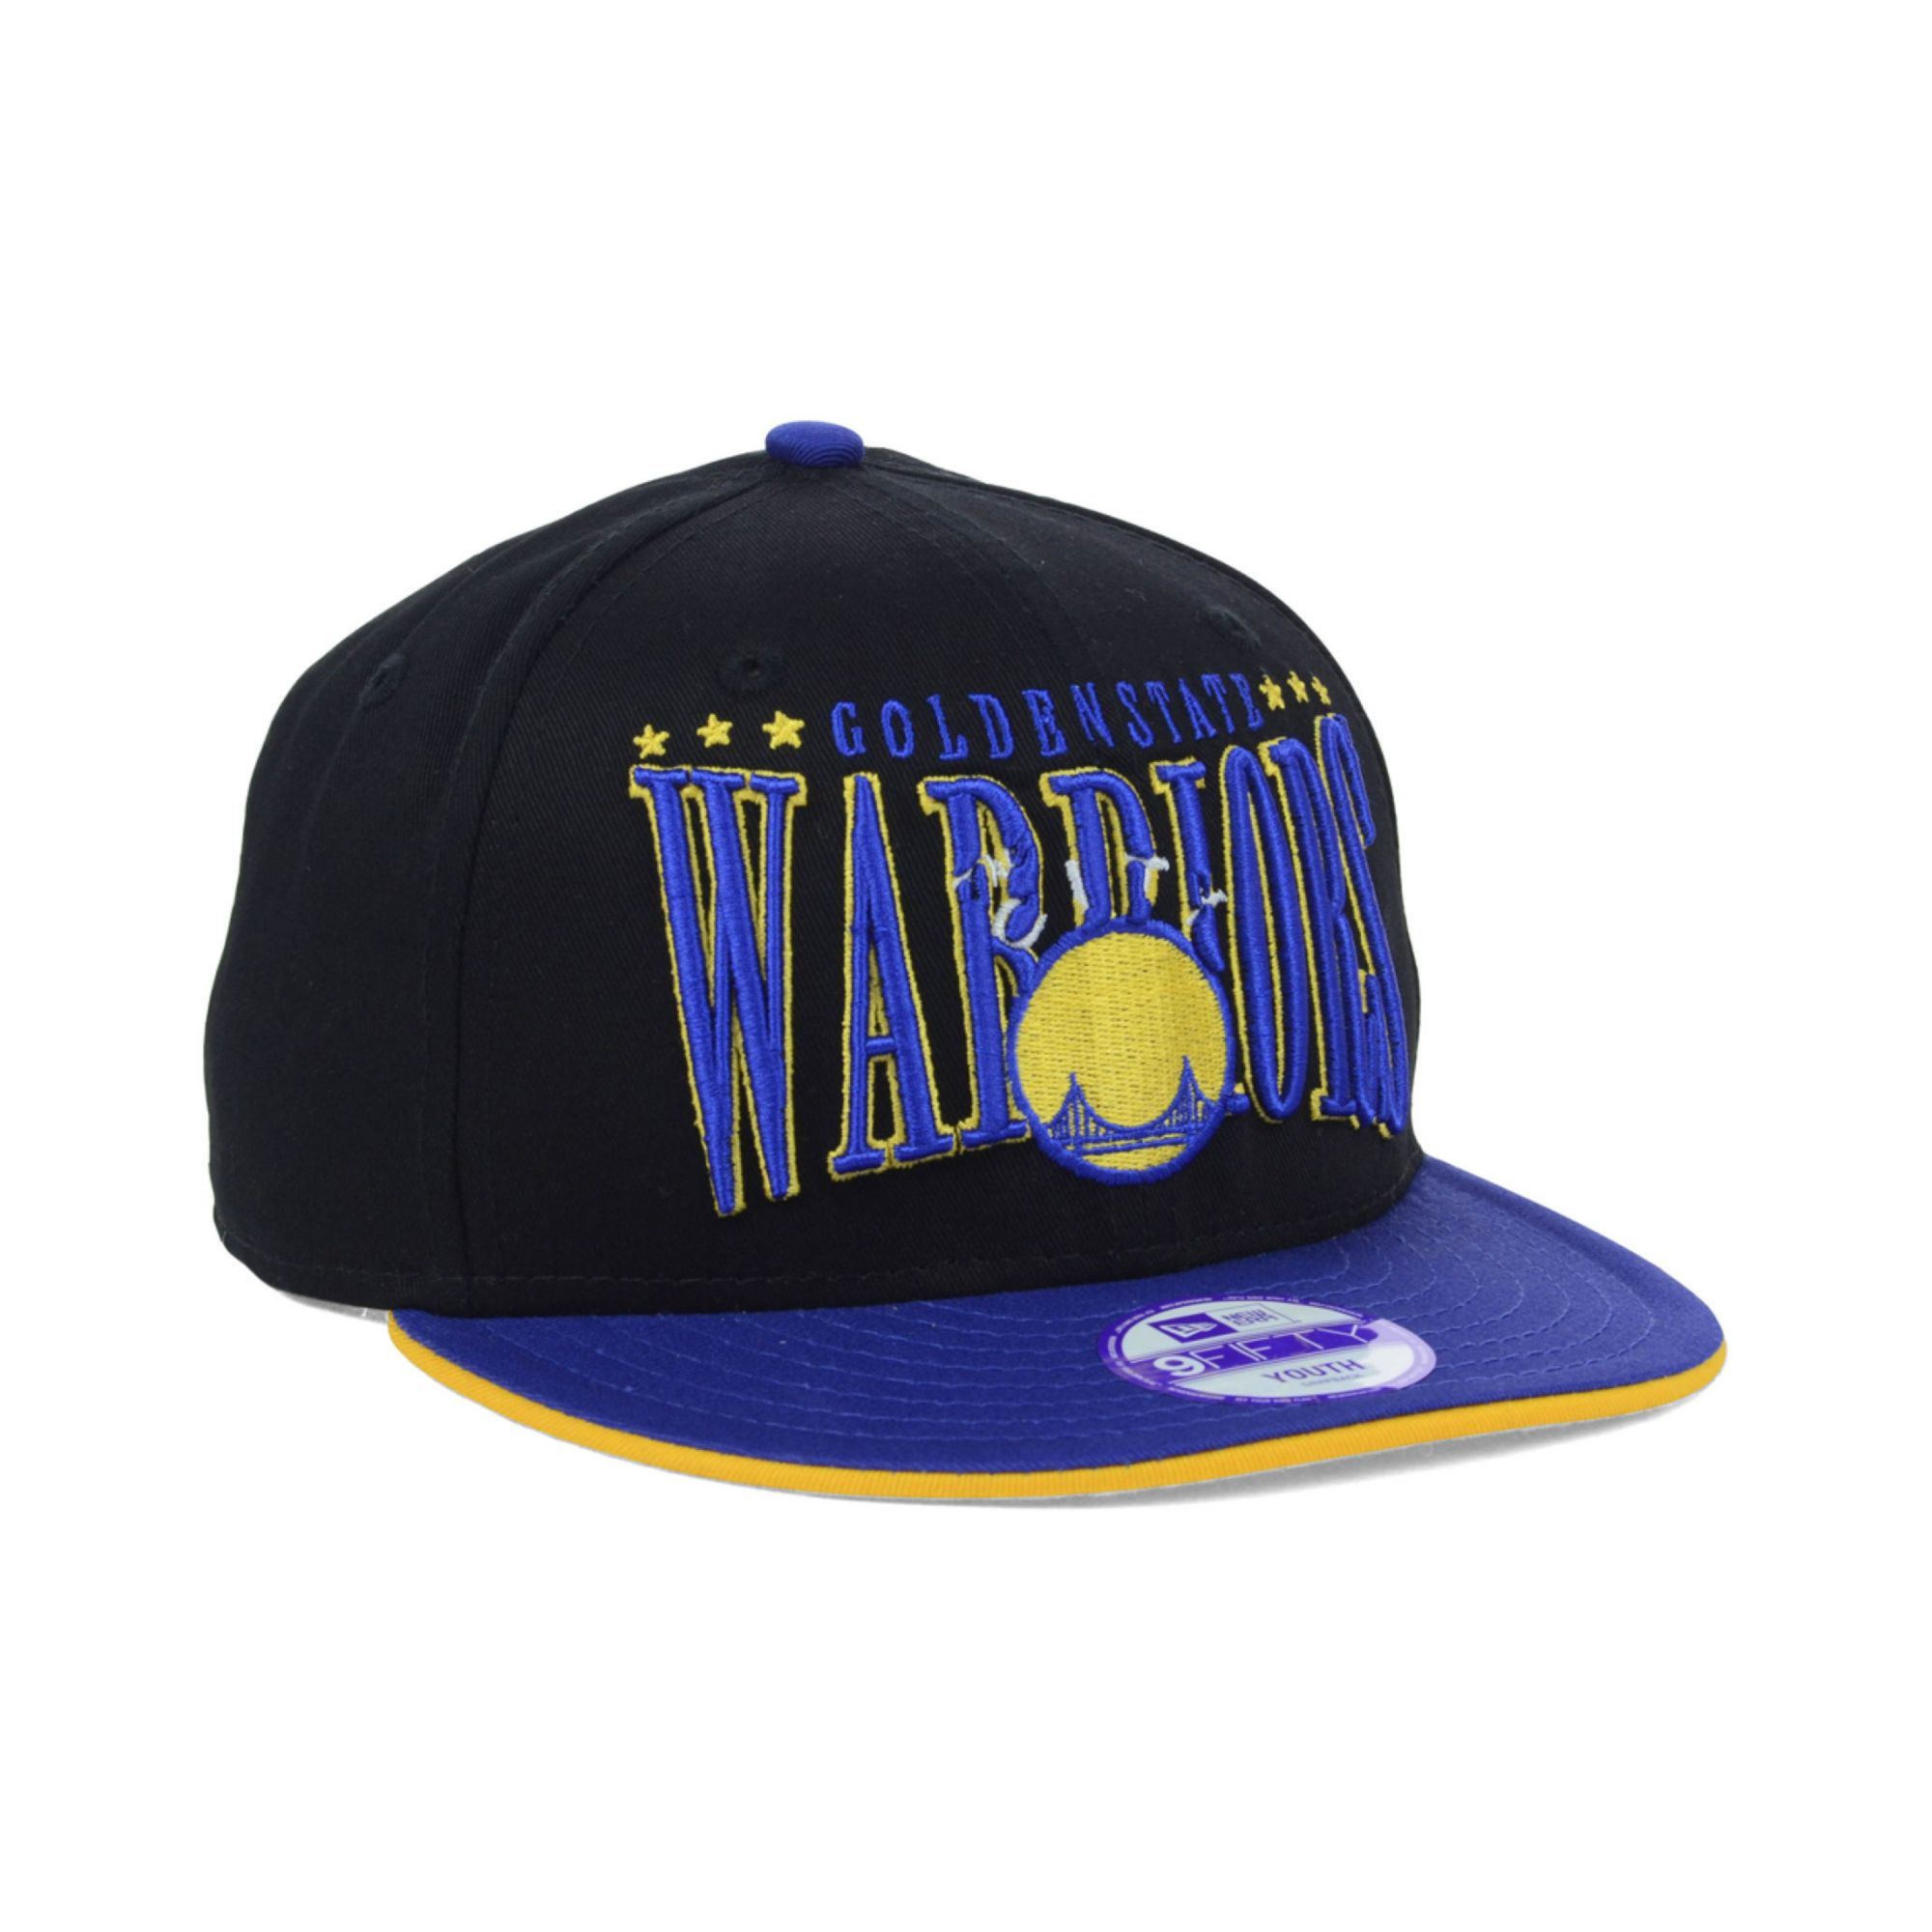 buy online 6c270 9bc32 ... new era nba jock tag 9fifty snapback cap 39b33 5a792  where can i buy  lyst ktz kids golden state warriors hardwood classics 9fifty b8e0a dcf14